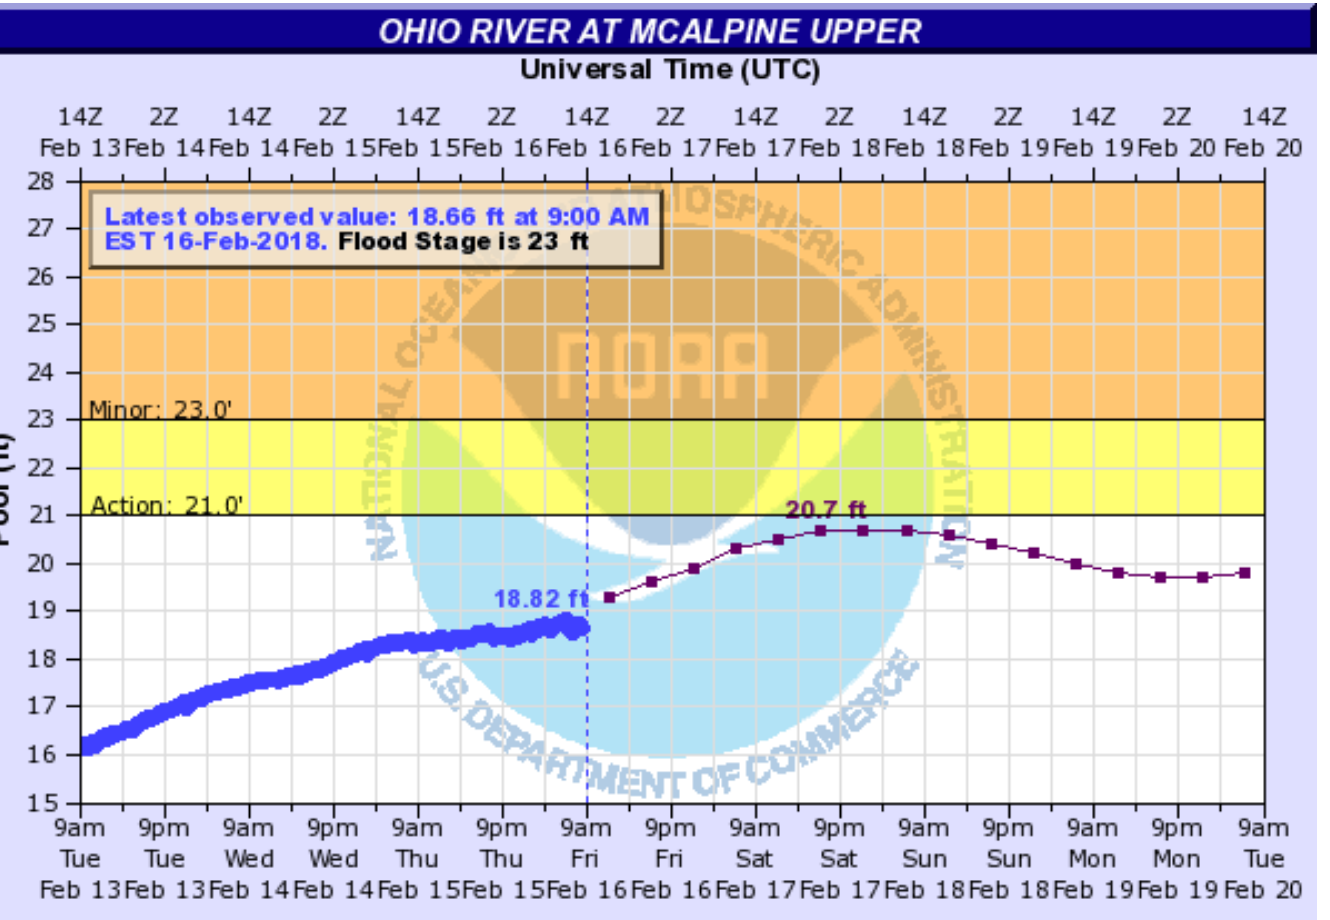 More rain on the way: flood warning for the Ohio River